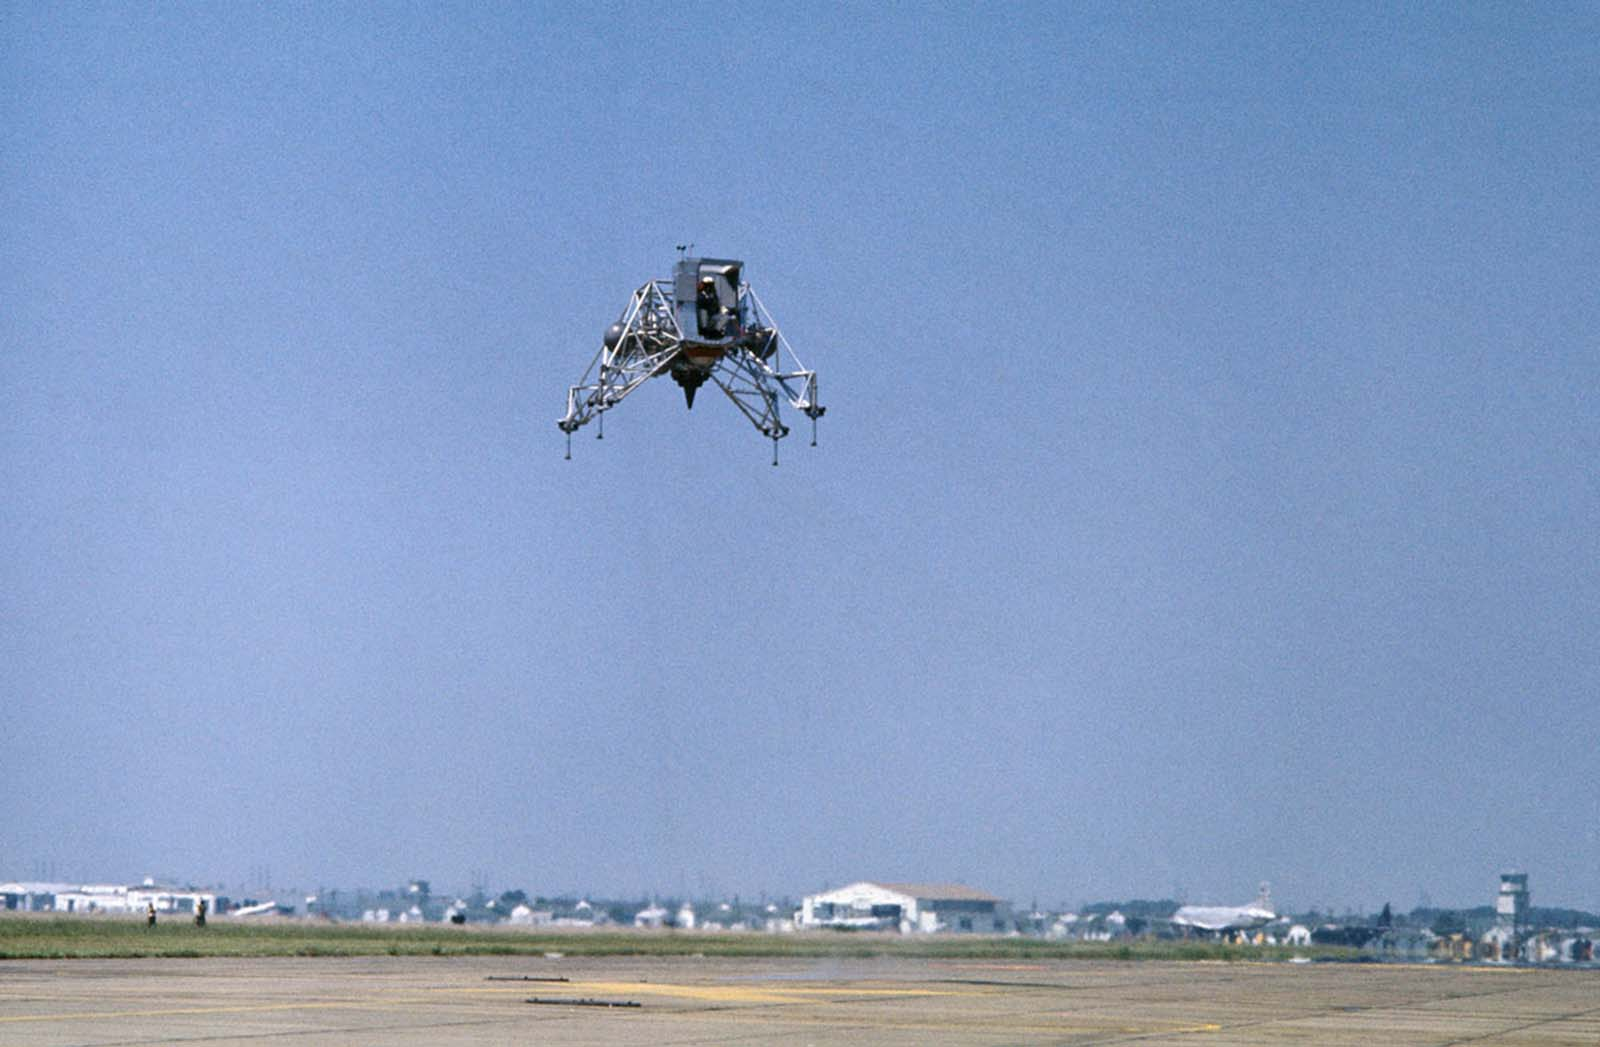 Original caption: Practicing for the Big One at Ellington A.F.B., Texas. Apollo 11 Commander Neil Armstrong flies the Lunar Landing Training Vehicle in preparation for the lunar-landing attempt in July. The flight lasted for five minutes, during which Armstrong made two takeoffs and landings. He flew the craft to an altitude of some 300 feet.